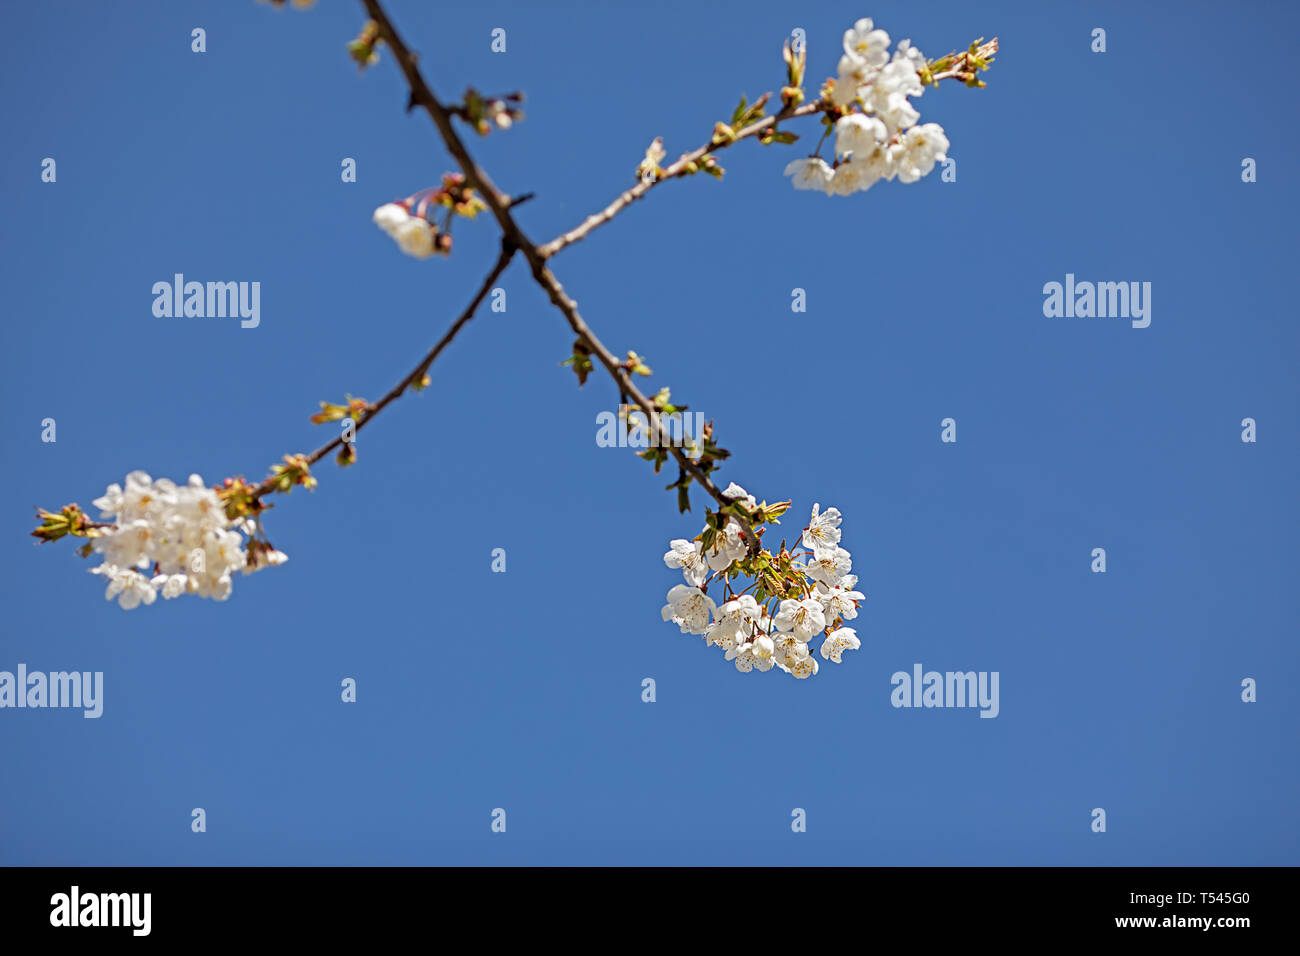 fruit tree blossoms against blue sky - Stock Image